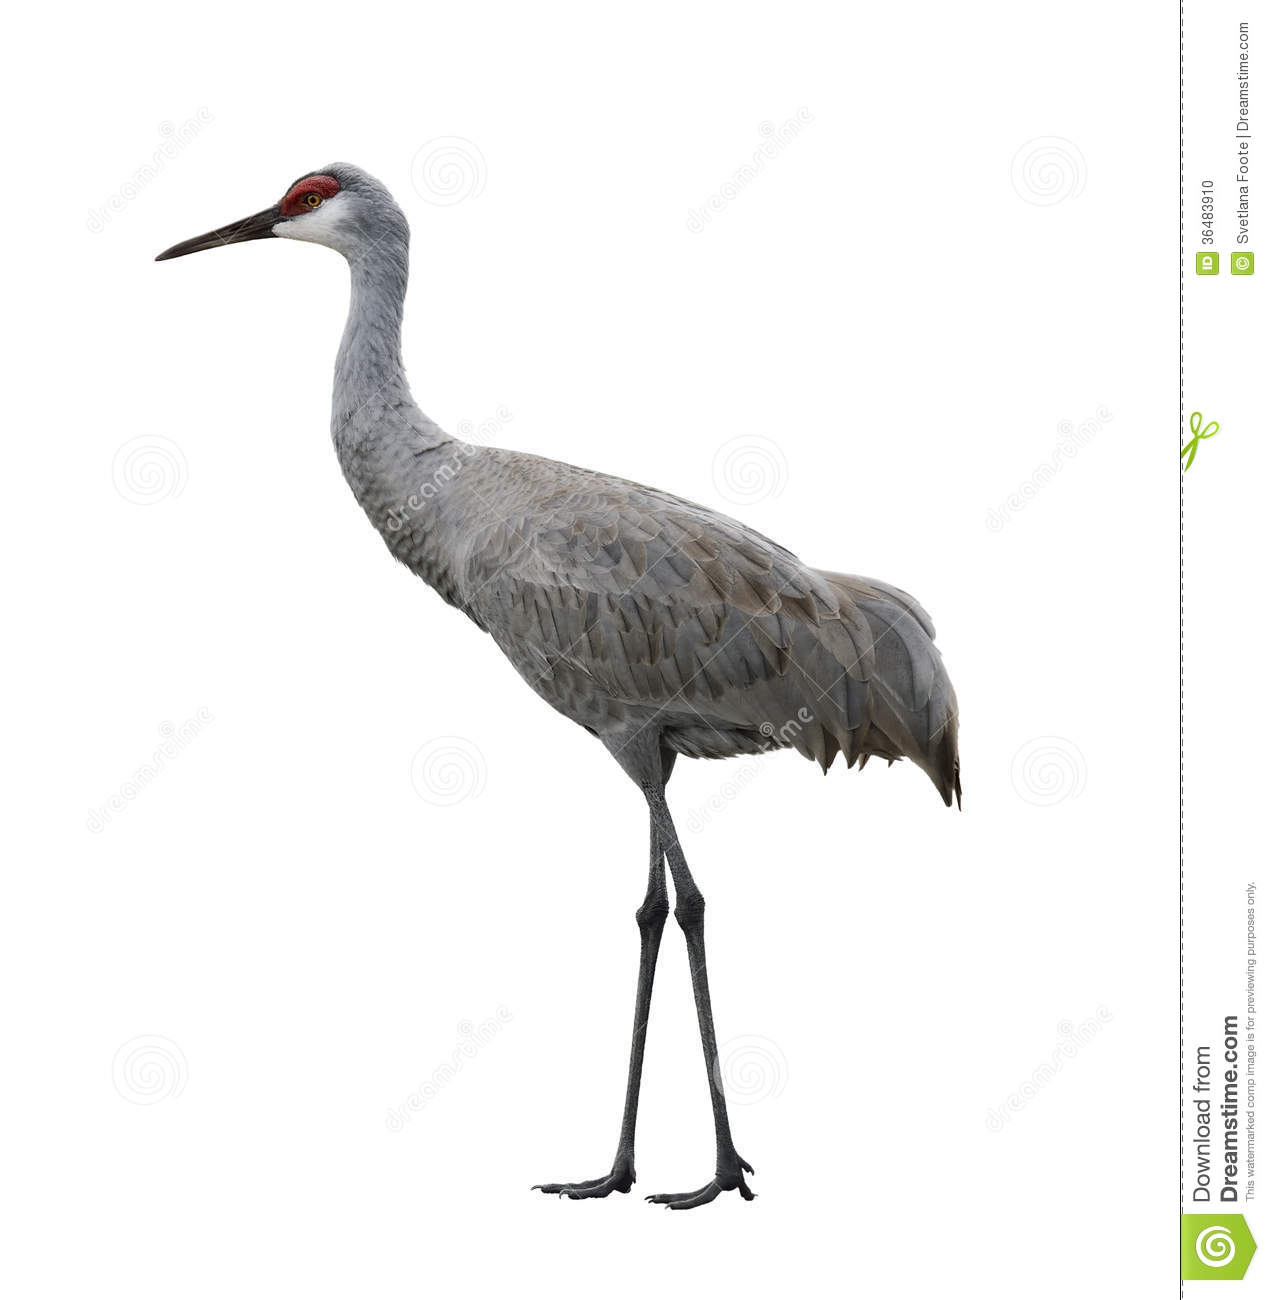 Sandhill Crane Bird Stock Photo - Image: 36483910